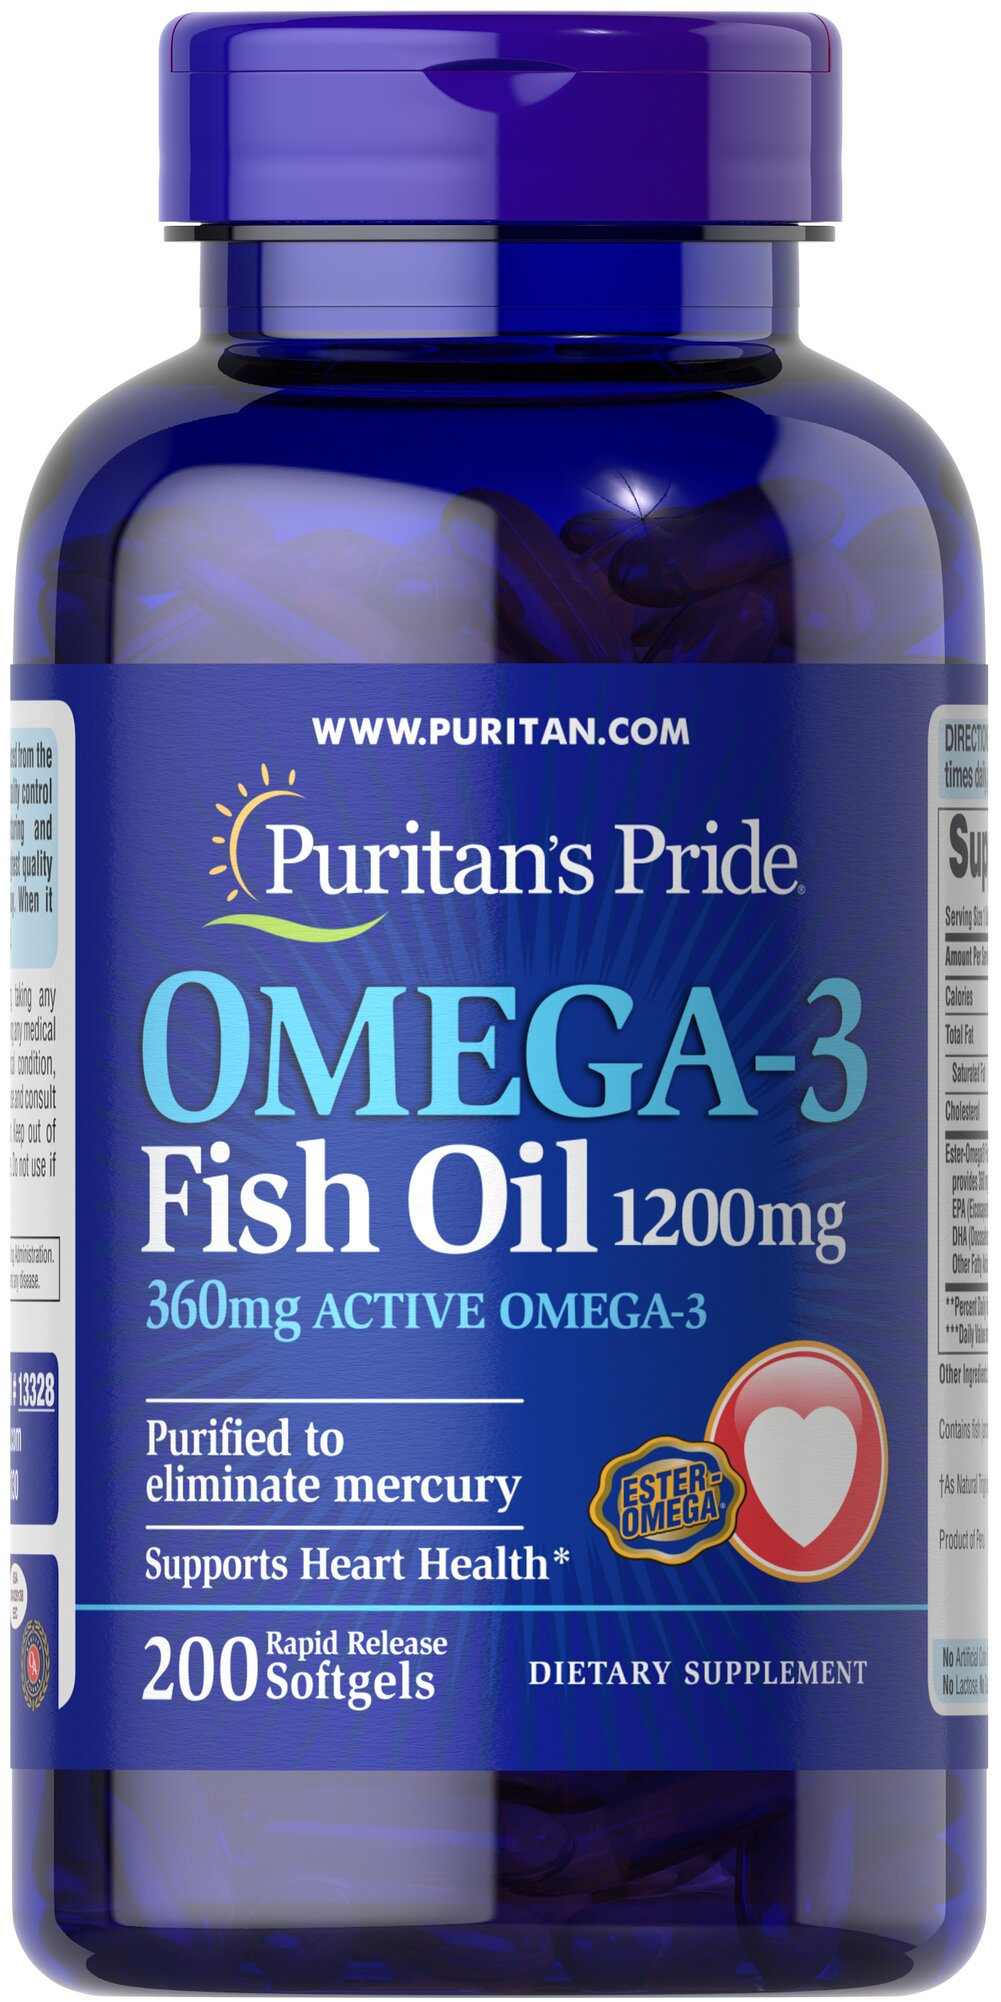 Omega-3 Fish Oil 1200 mg (360 mg Active Omega-3) <p><span></span>Provides 360mg of active Omega-3.</p><p><span></span>Supports heart health.**</p><p><span></span>Purified to eliminate mercury.</p><p>This Ester-Omega® Fish Oil provides 360mg of total omega-3 fatty acids, comprising of EPA, DHA and other fatty acids. EPA and DHA fatty acids support heart health.** Purified to eliminate mercury. Rapid release softgel